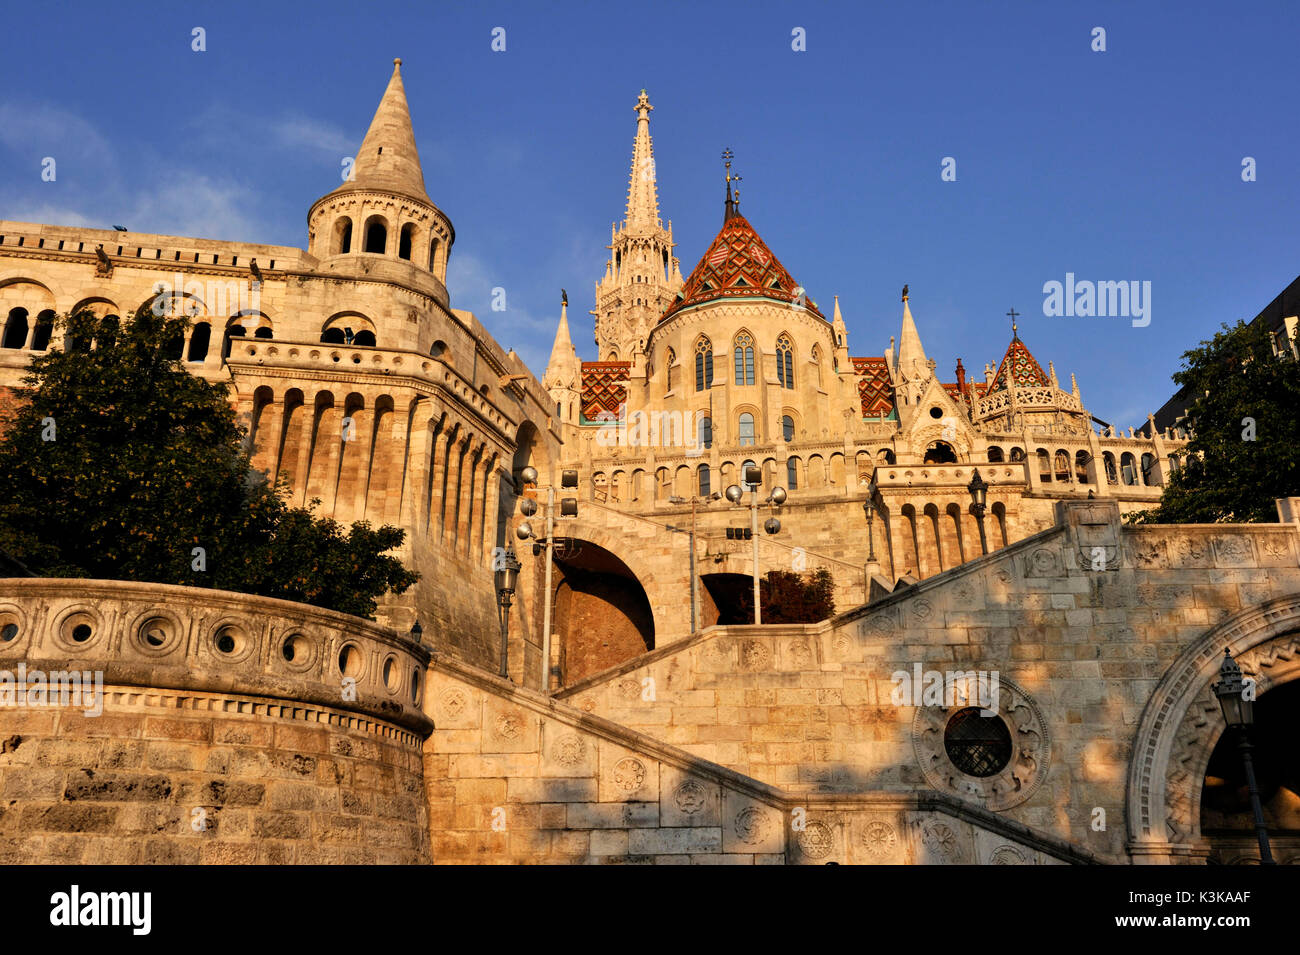 Hungary, Budapest, Fisherman's Bastion and Mathias Church located in the historical Buda Castle district listed Stock Photo